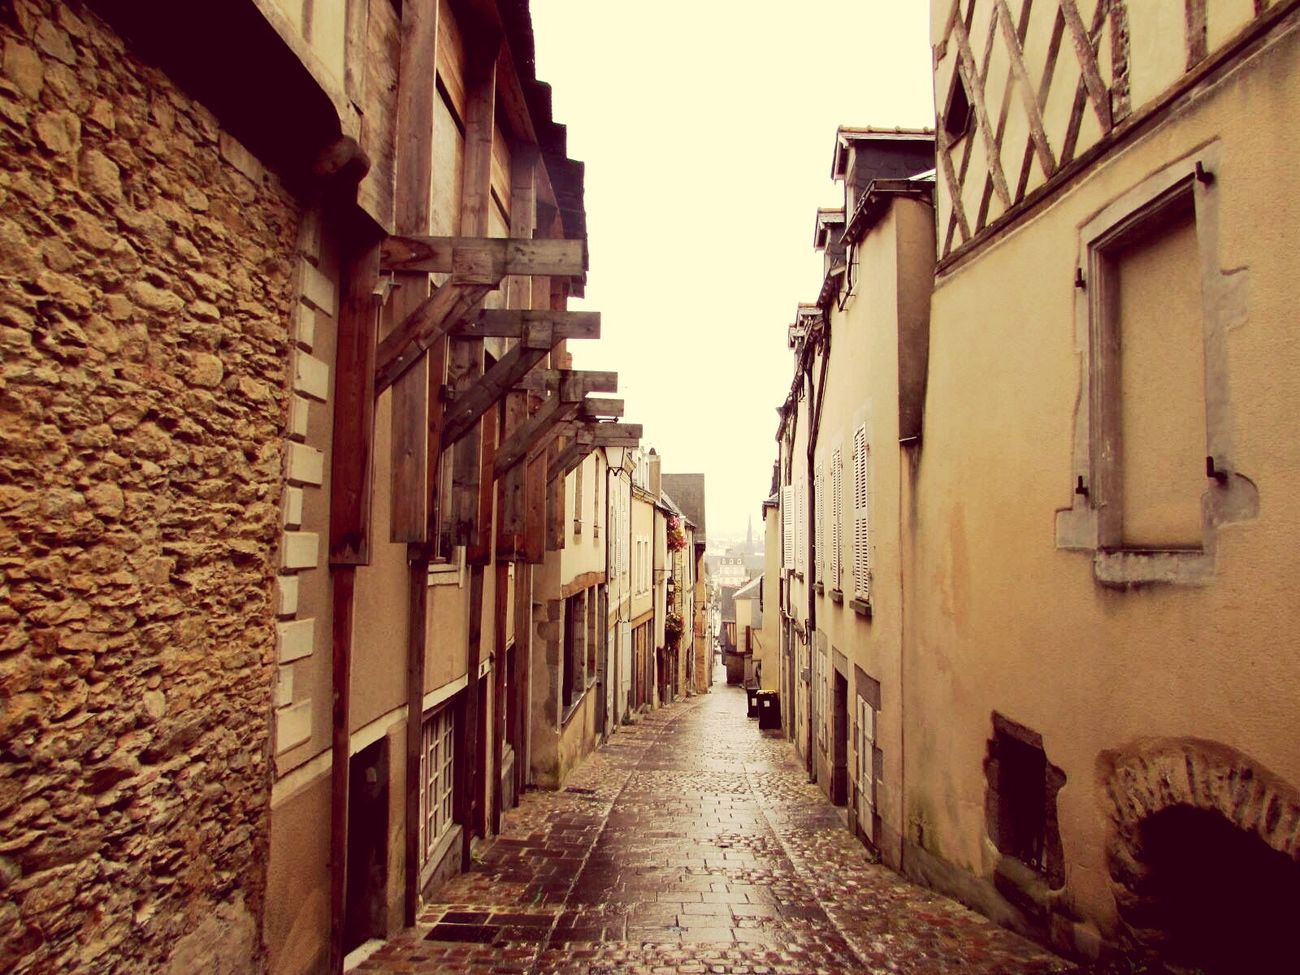 streets of France 🇫🇷 France Newtothis Streetphotography First Eyeem Photo